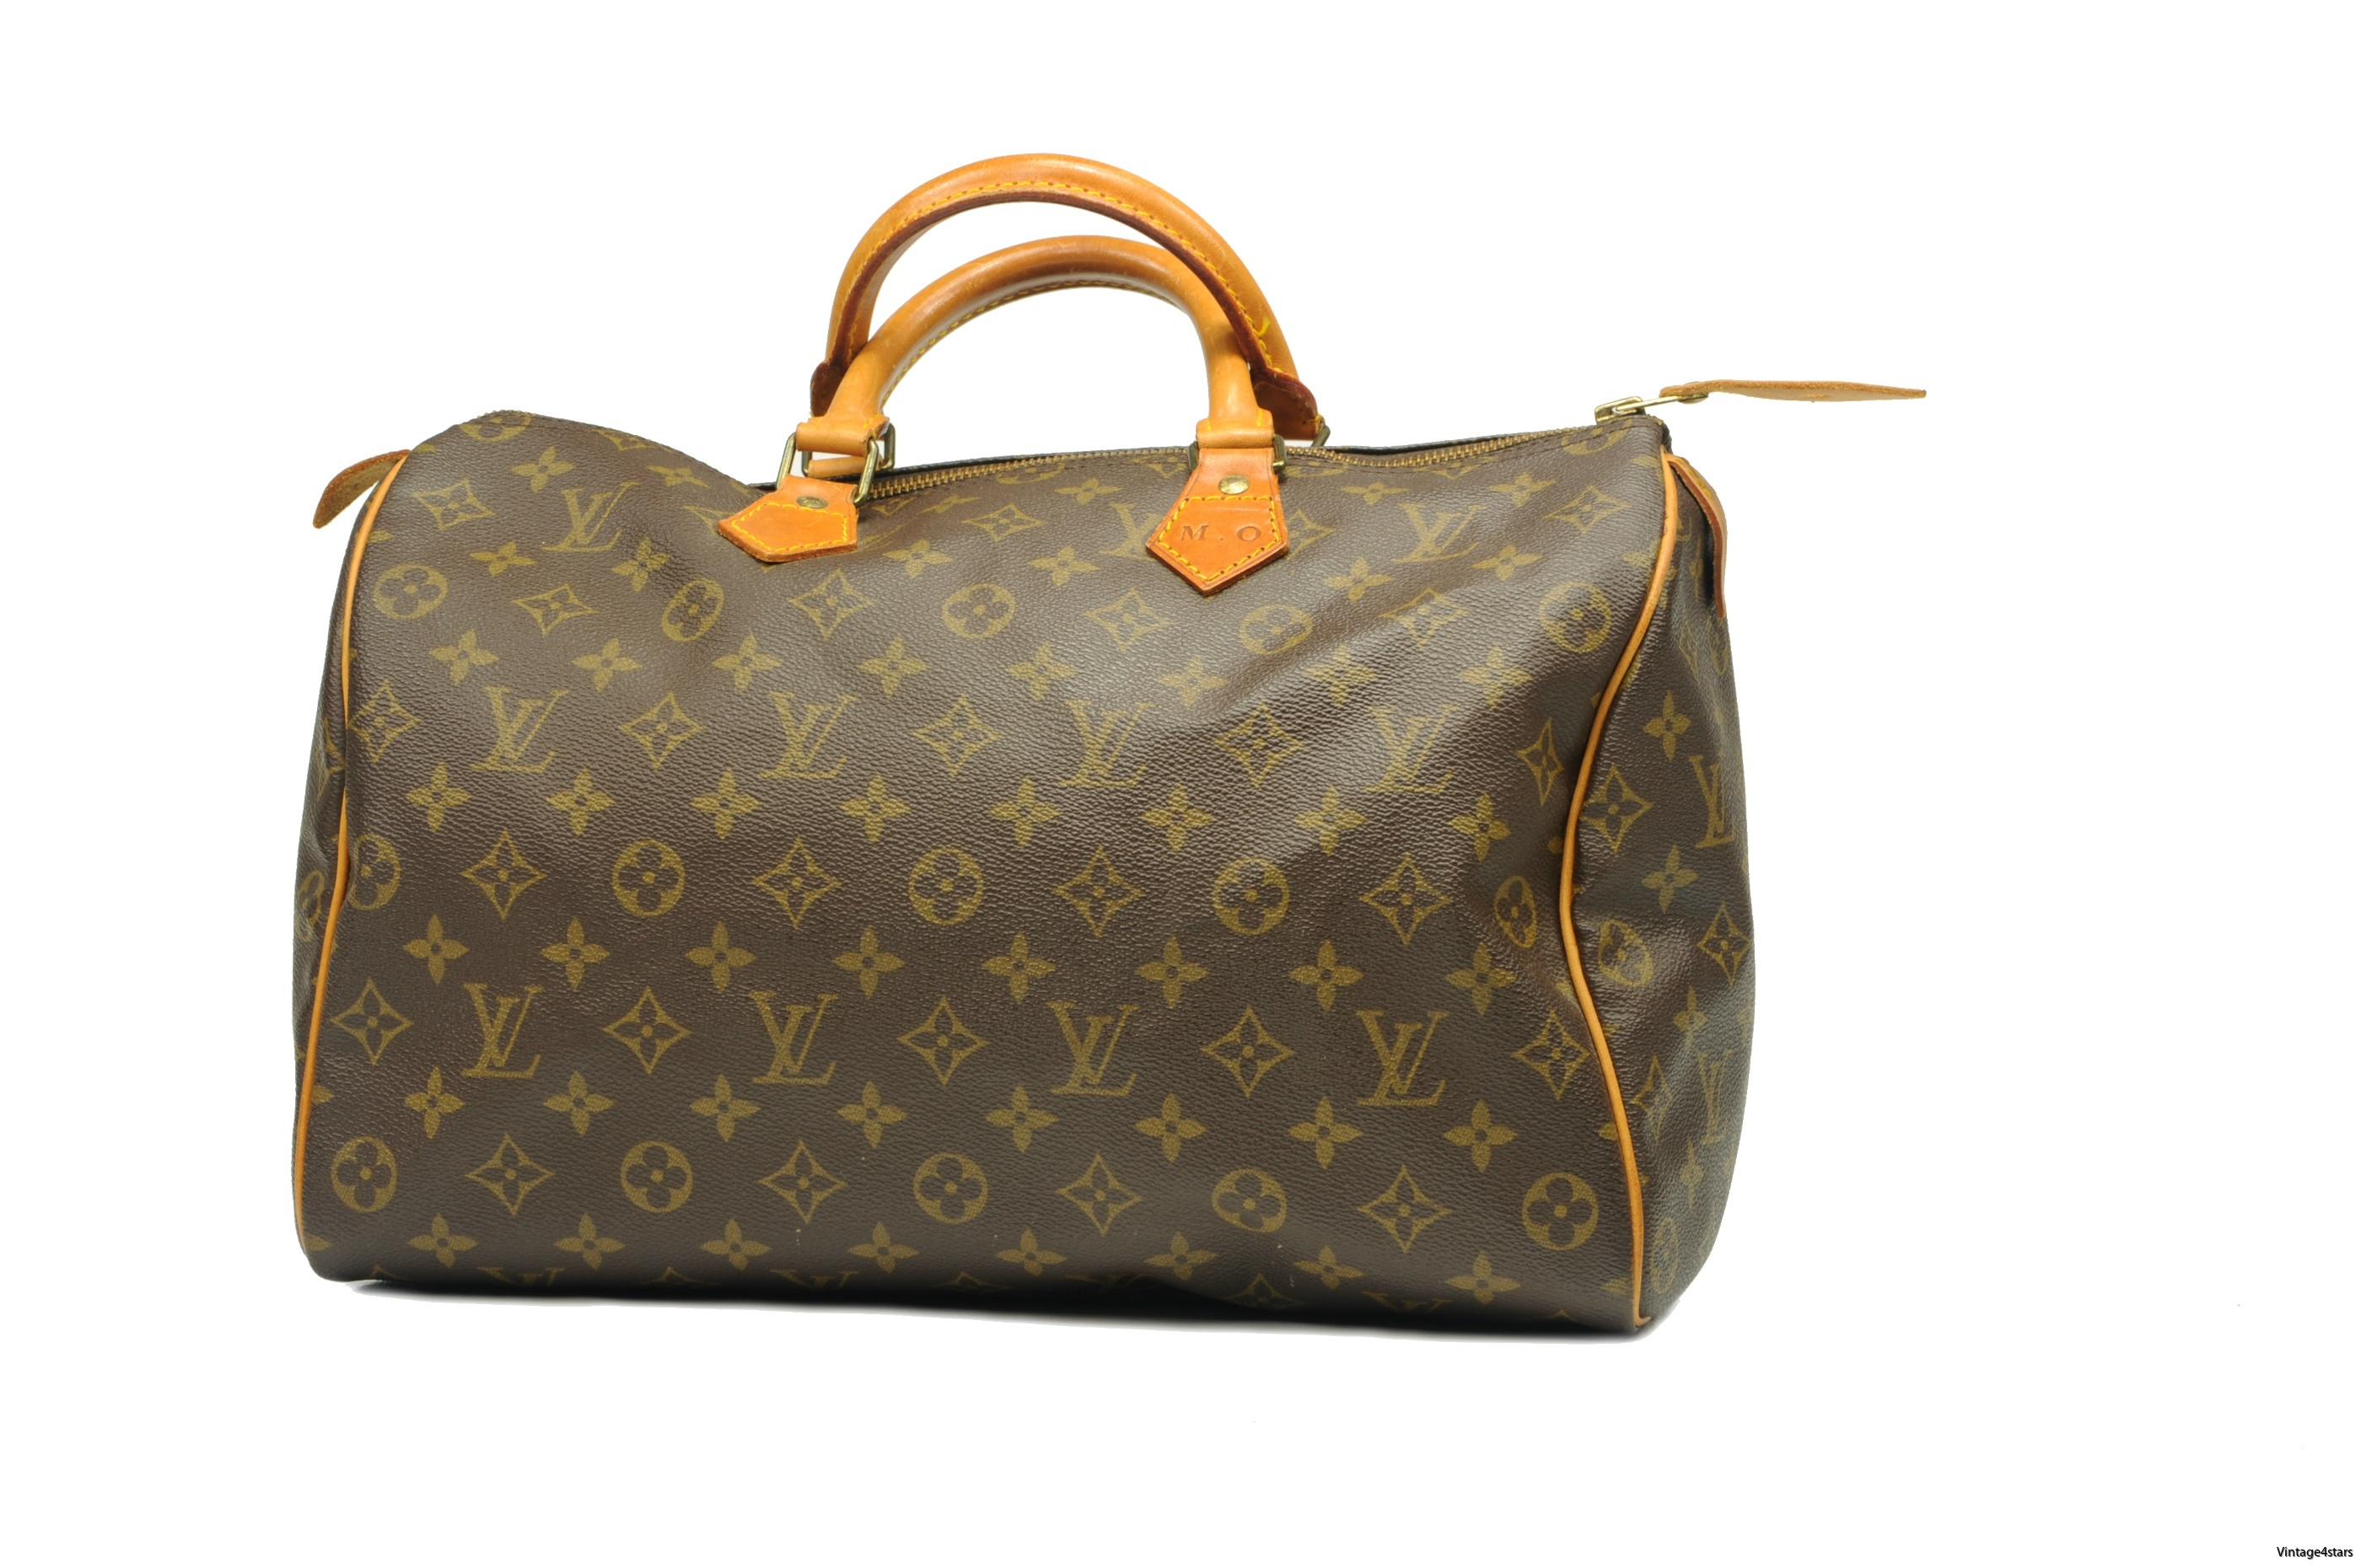 Louis Vuitton Speedy 35 Monogram 1